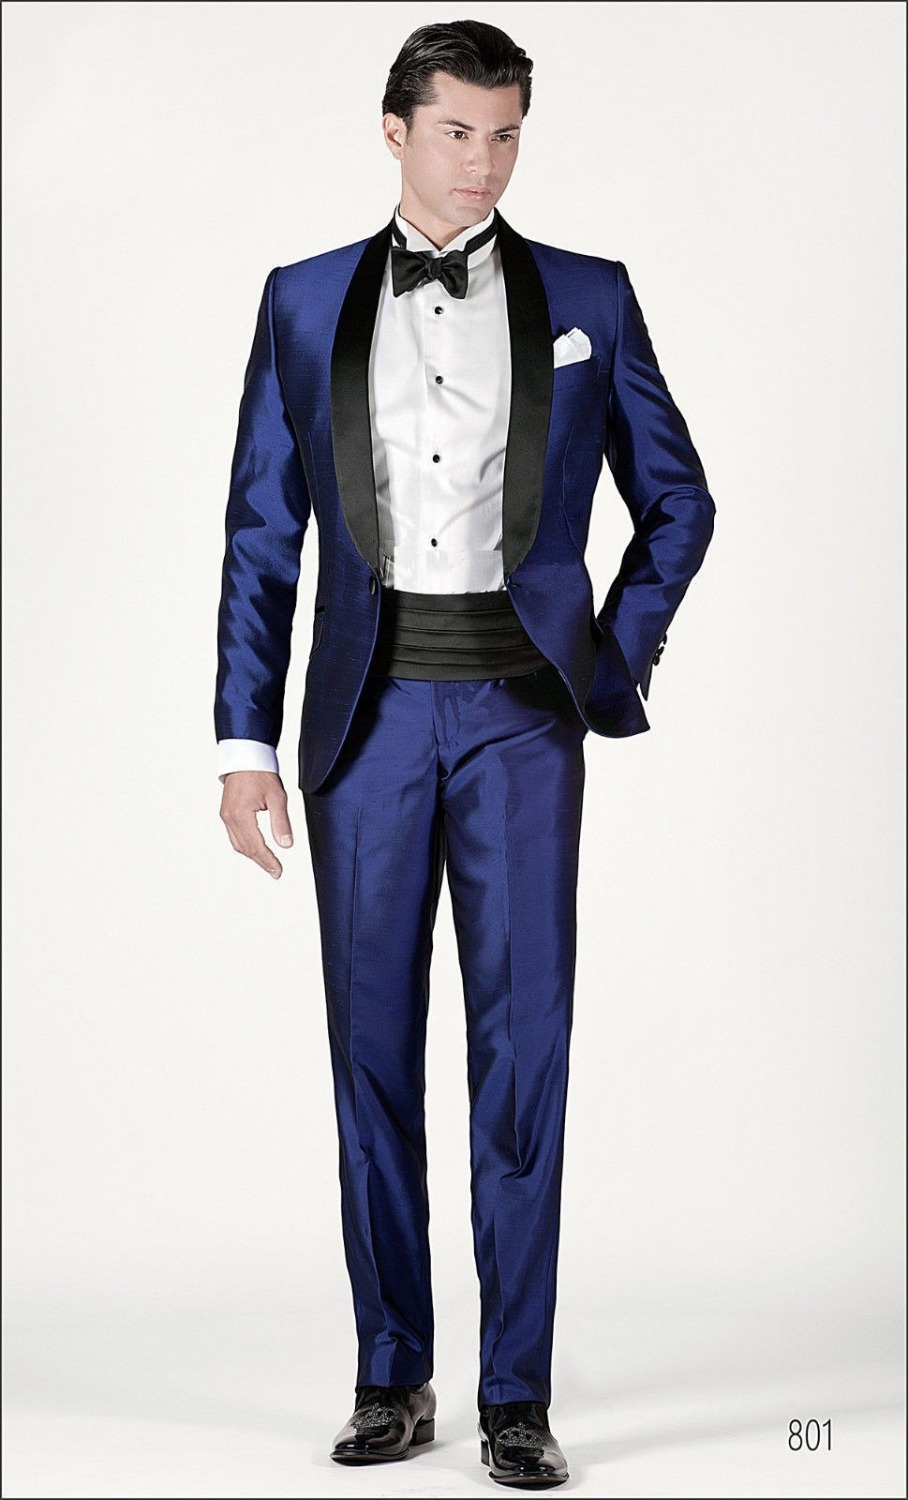 Tuxedo For Wedding Suits Shiny Blue For Men Groom Wear 2019 Custom Made Stain